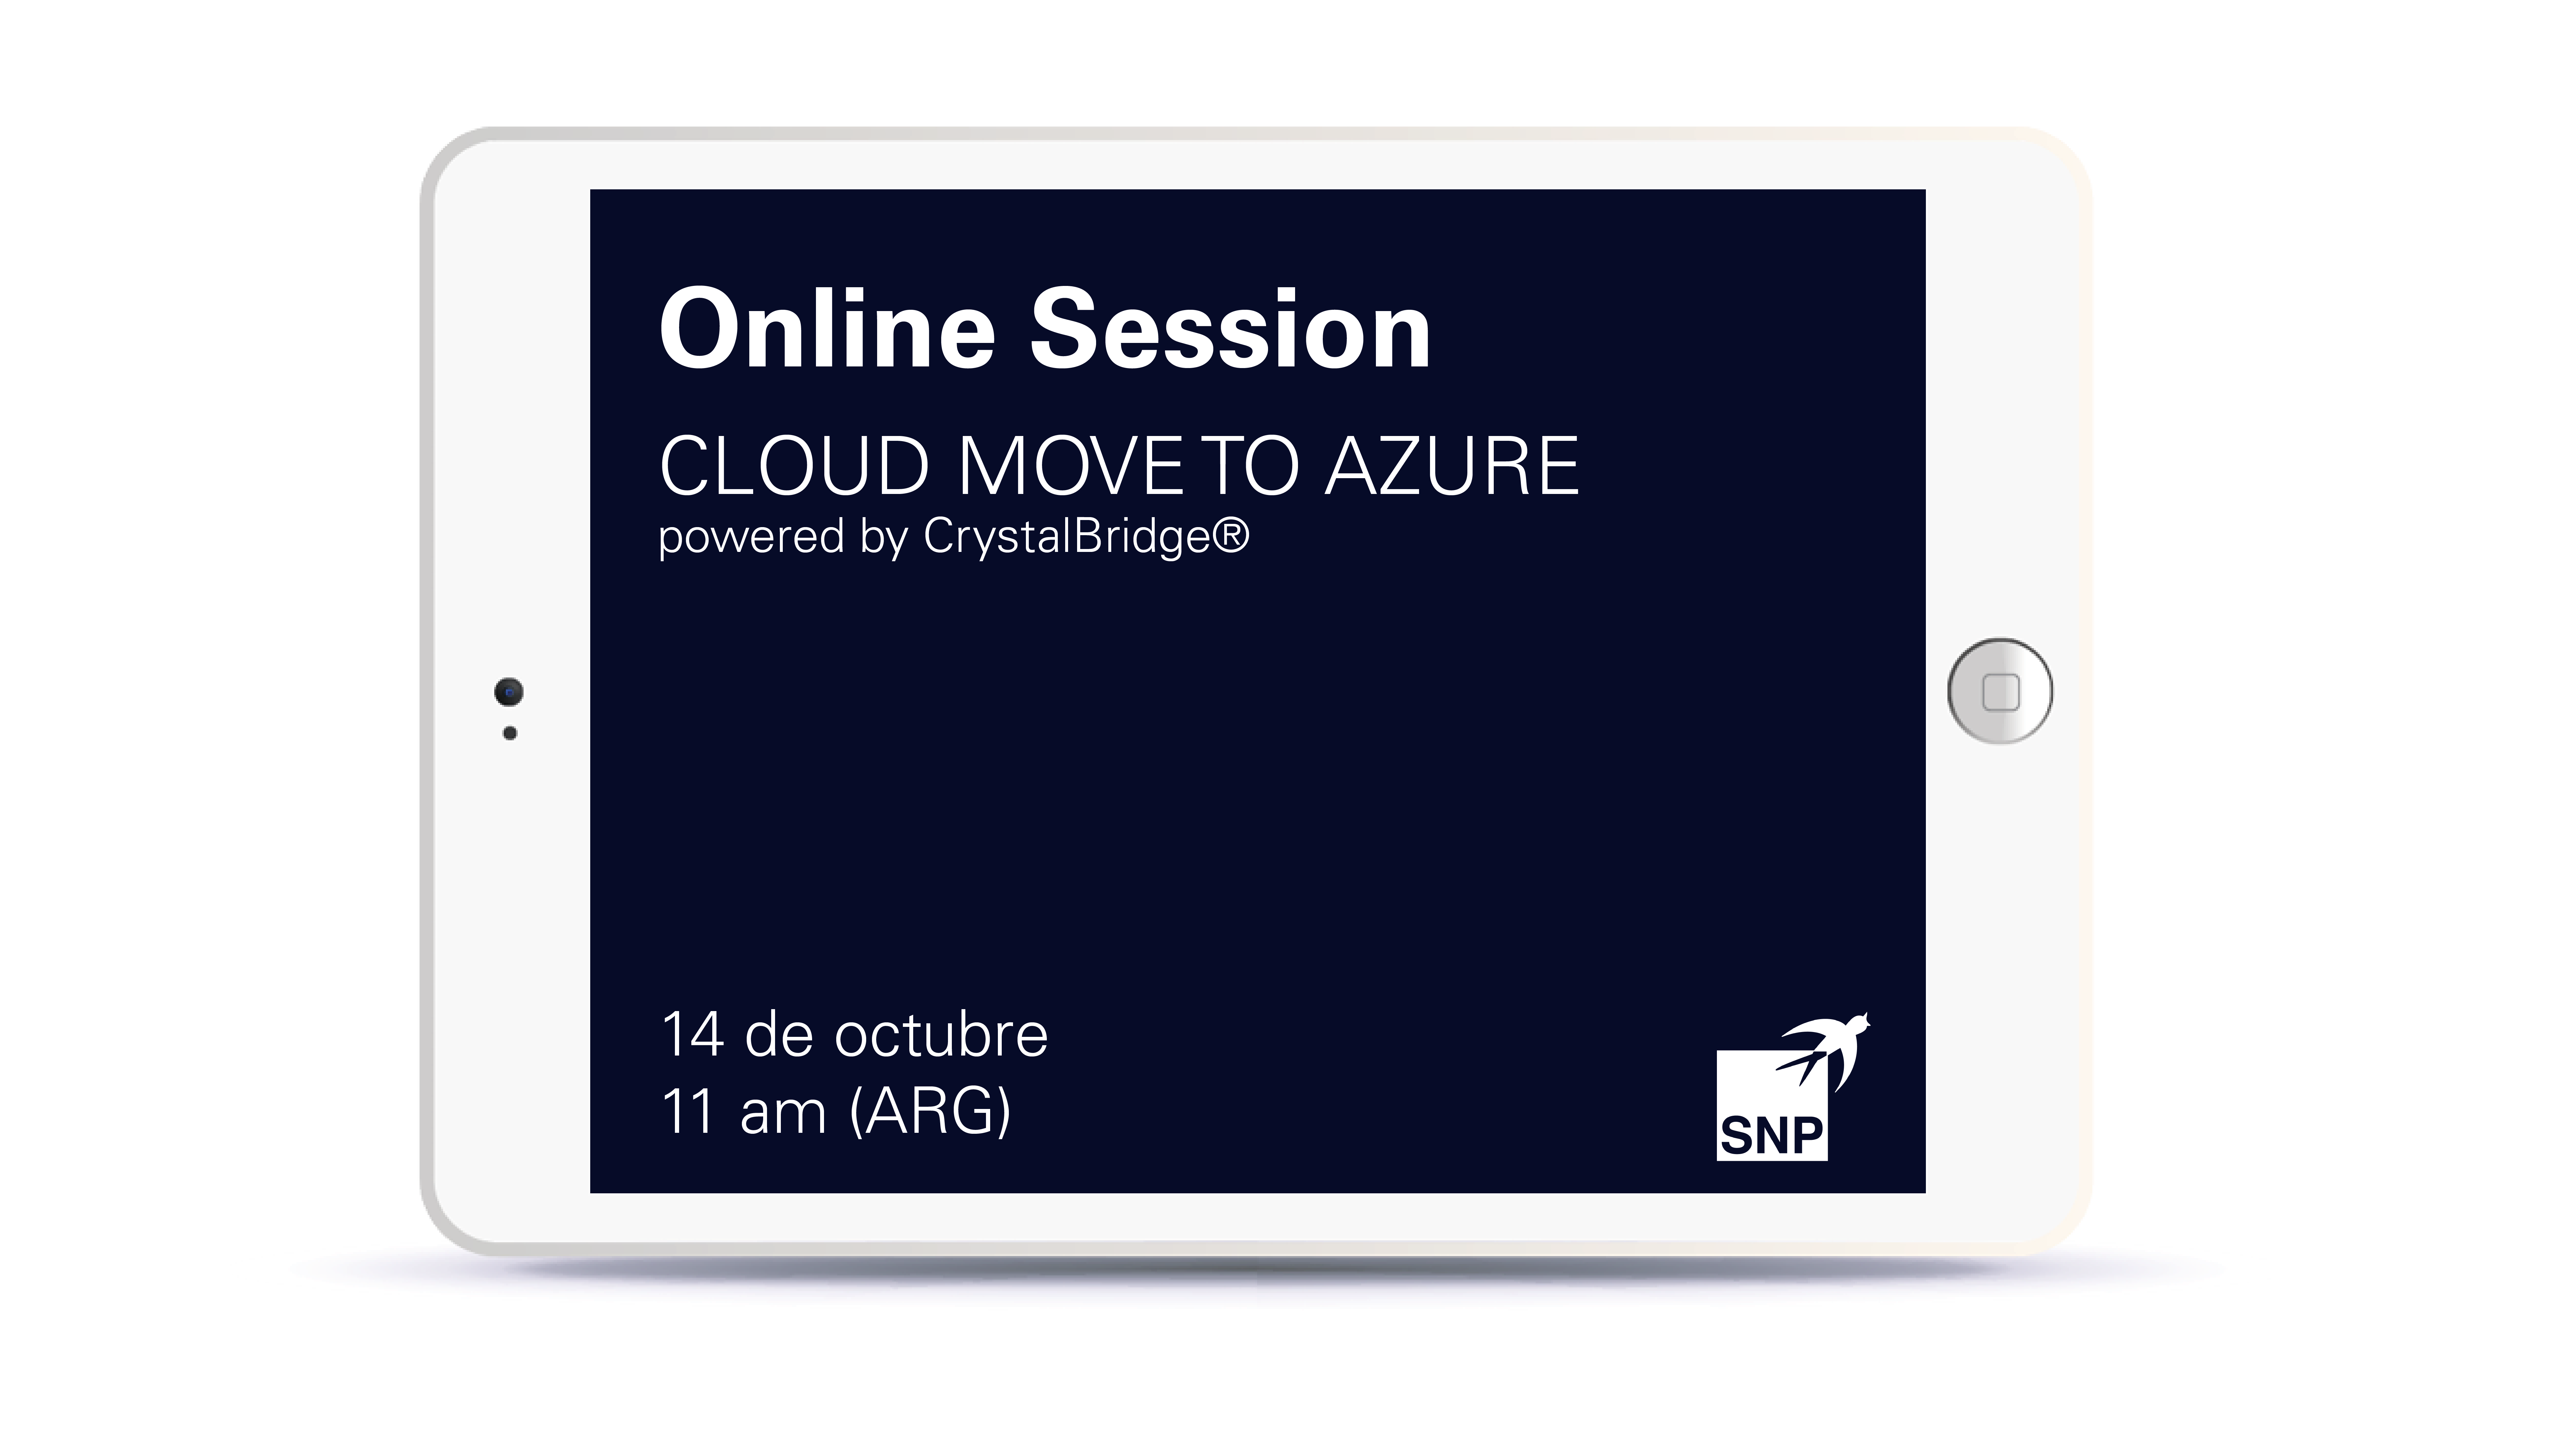 Online Session SNP & Microsoft - Cloud Move to Azure Book